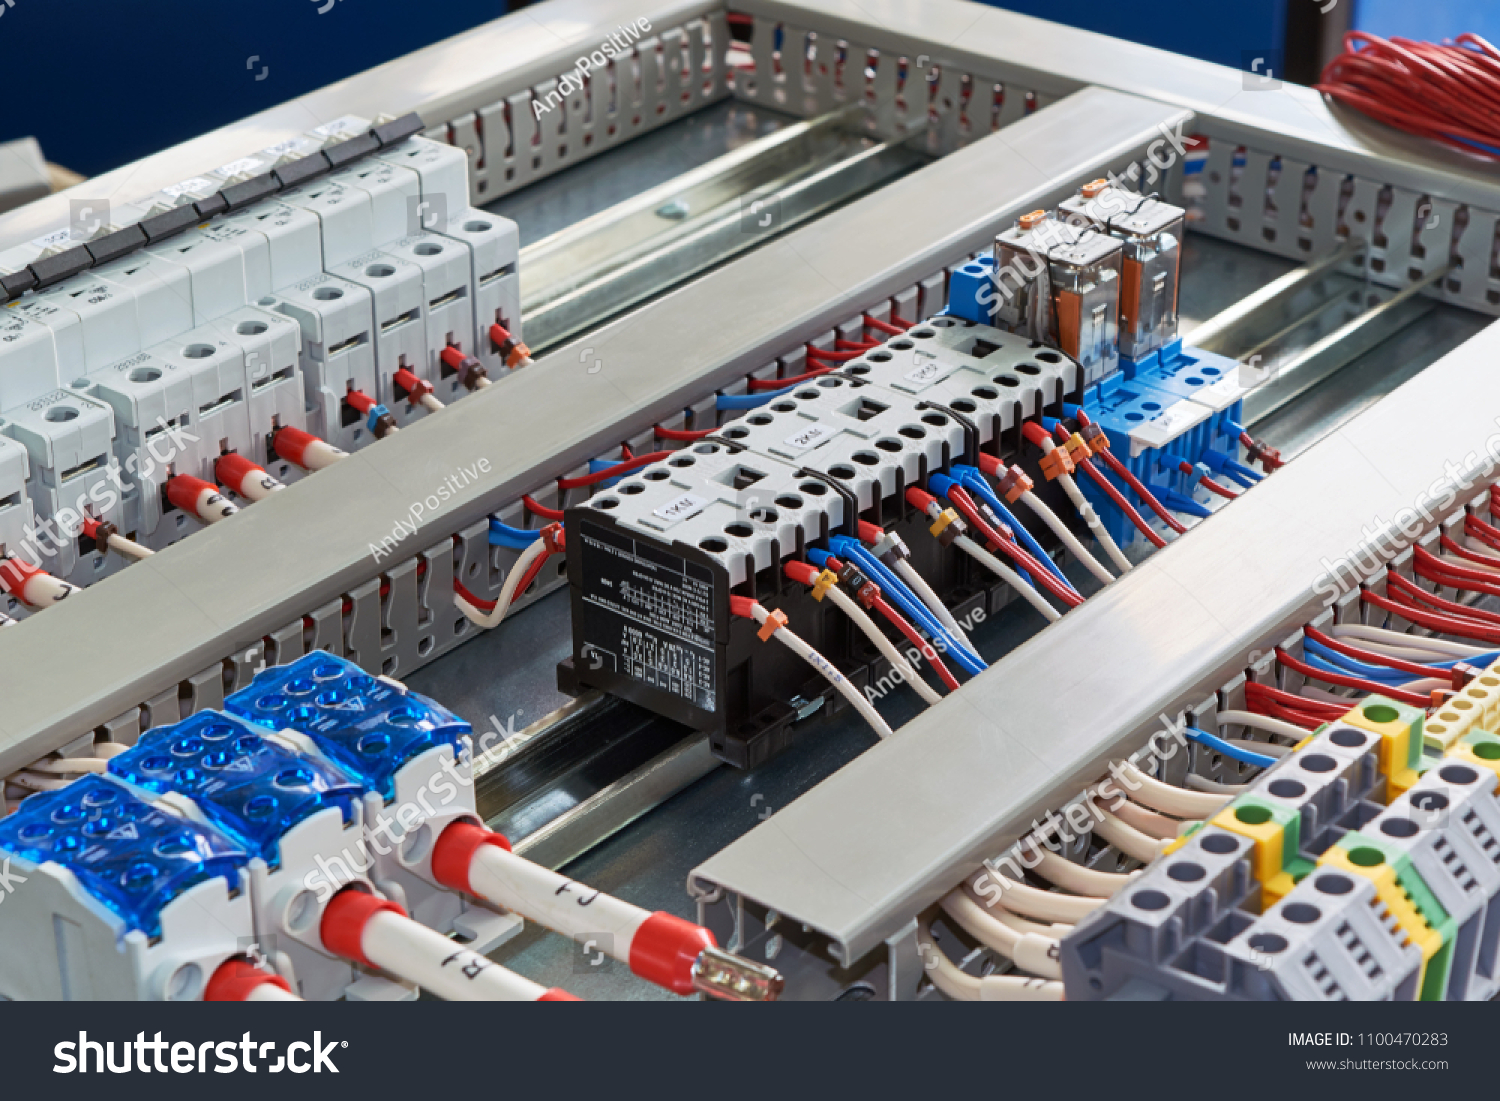 Contactors Relays Circuit Breakers Terminals Electrical Stock Photo ...